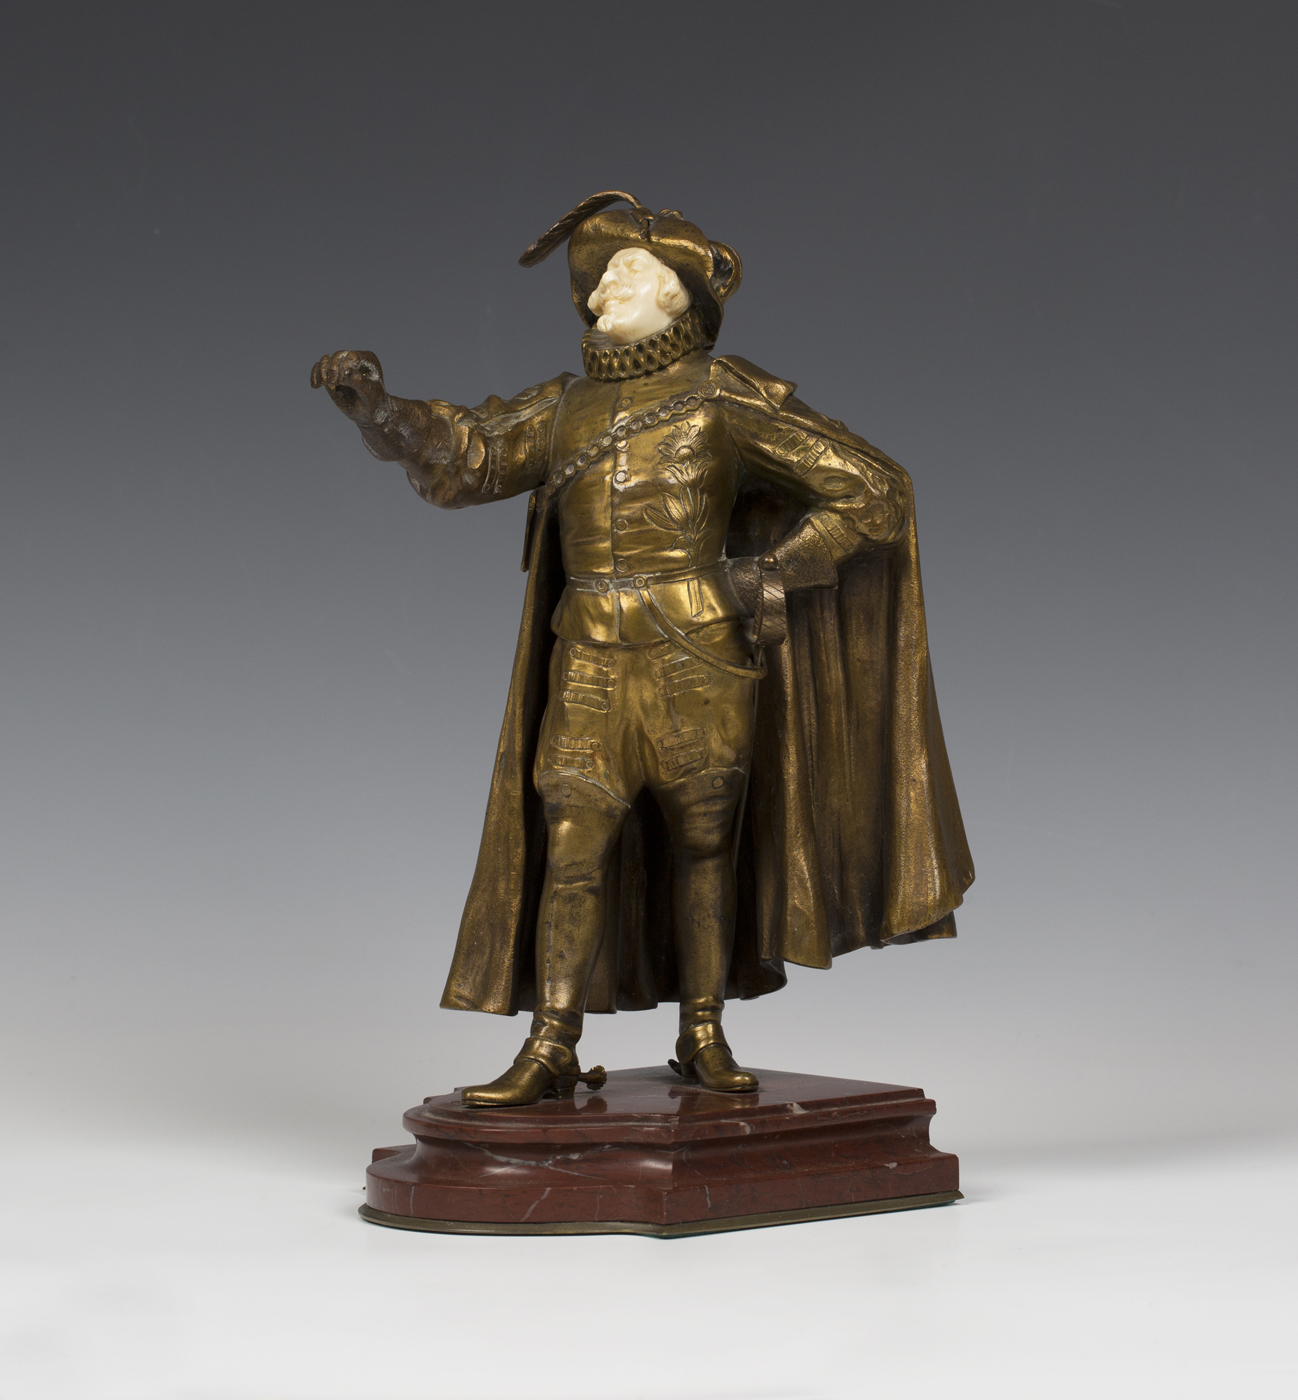 Paul D'Aire - Cyrano de Bergerac, a late 19th/early 20th century